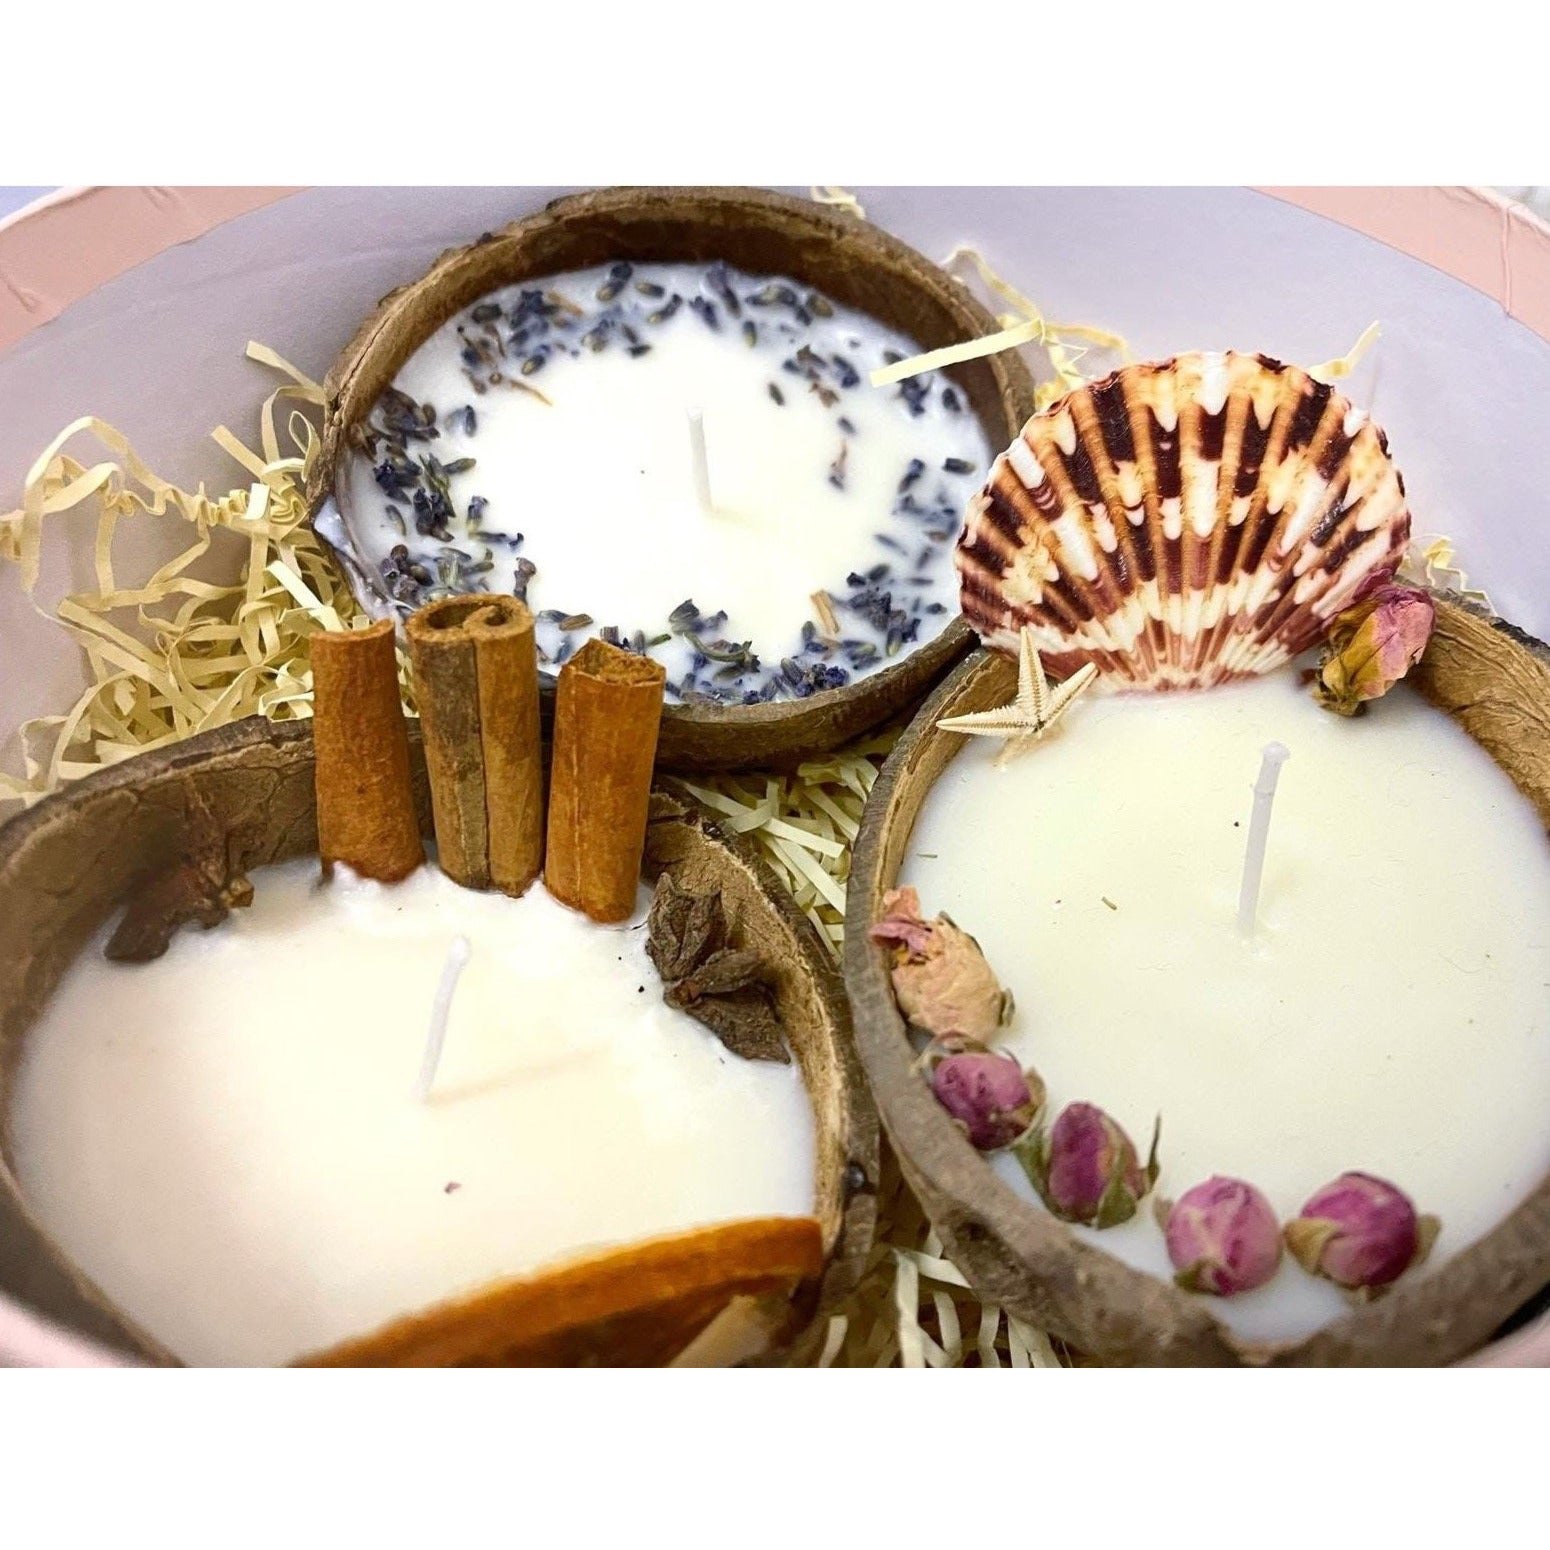 3 Coconut Candles Gift Set with Coconut & Vanilla, Lavender, Cinnamon&Orange gentle scented Soy candles in coconut shell, PRE-ORDER delivery around 4th of December